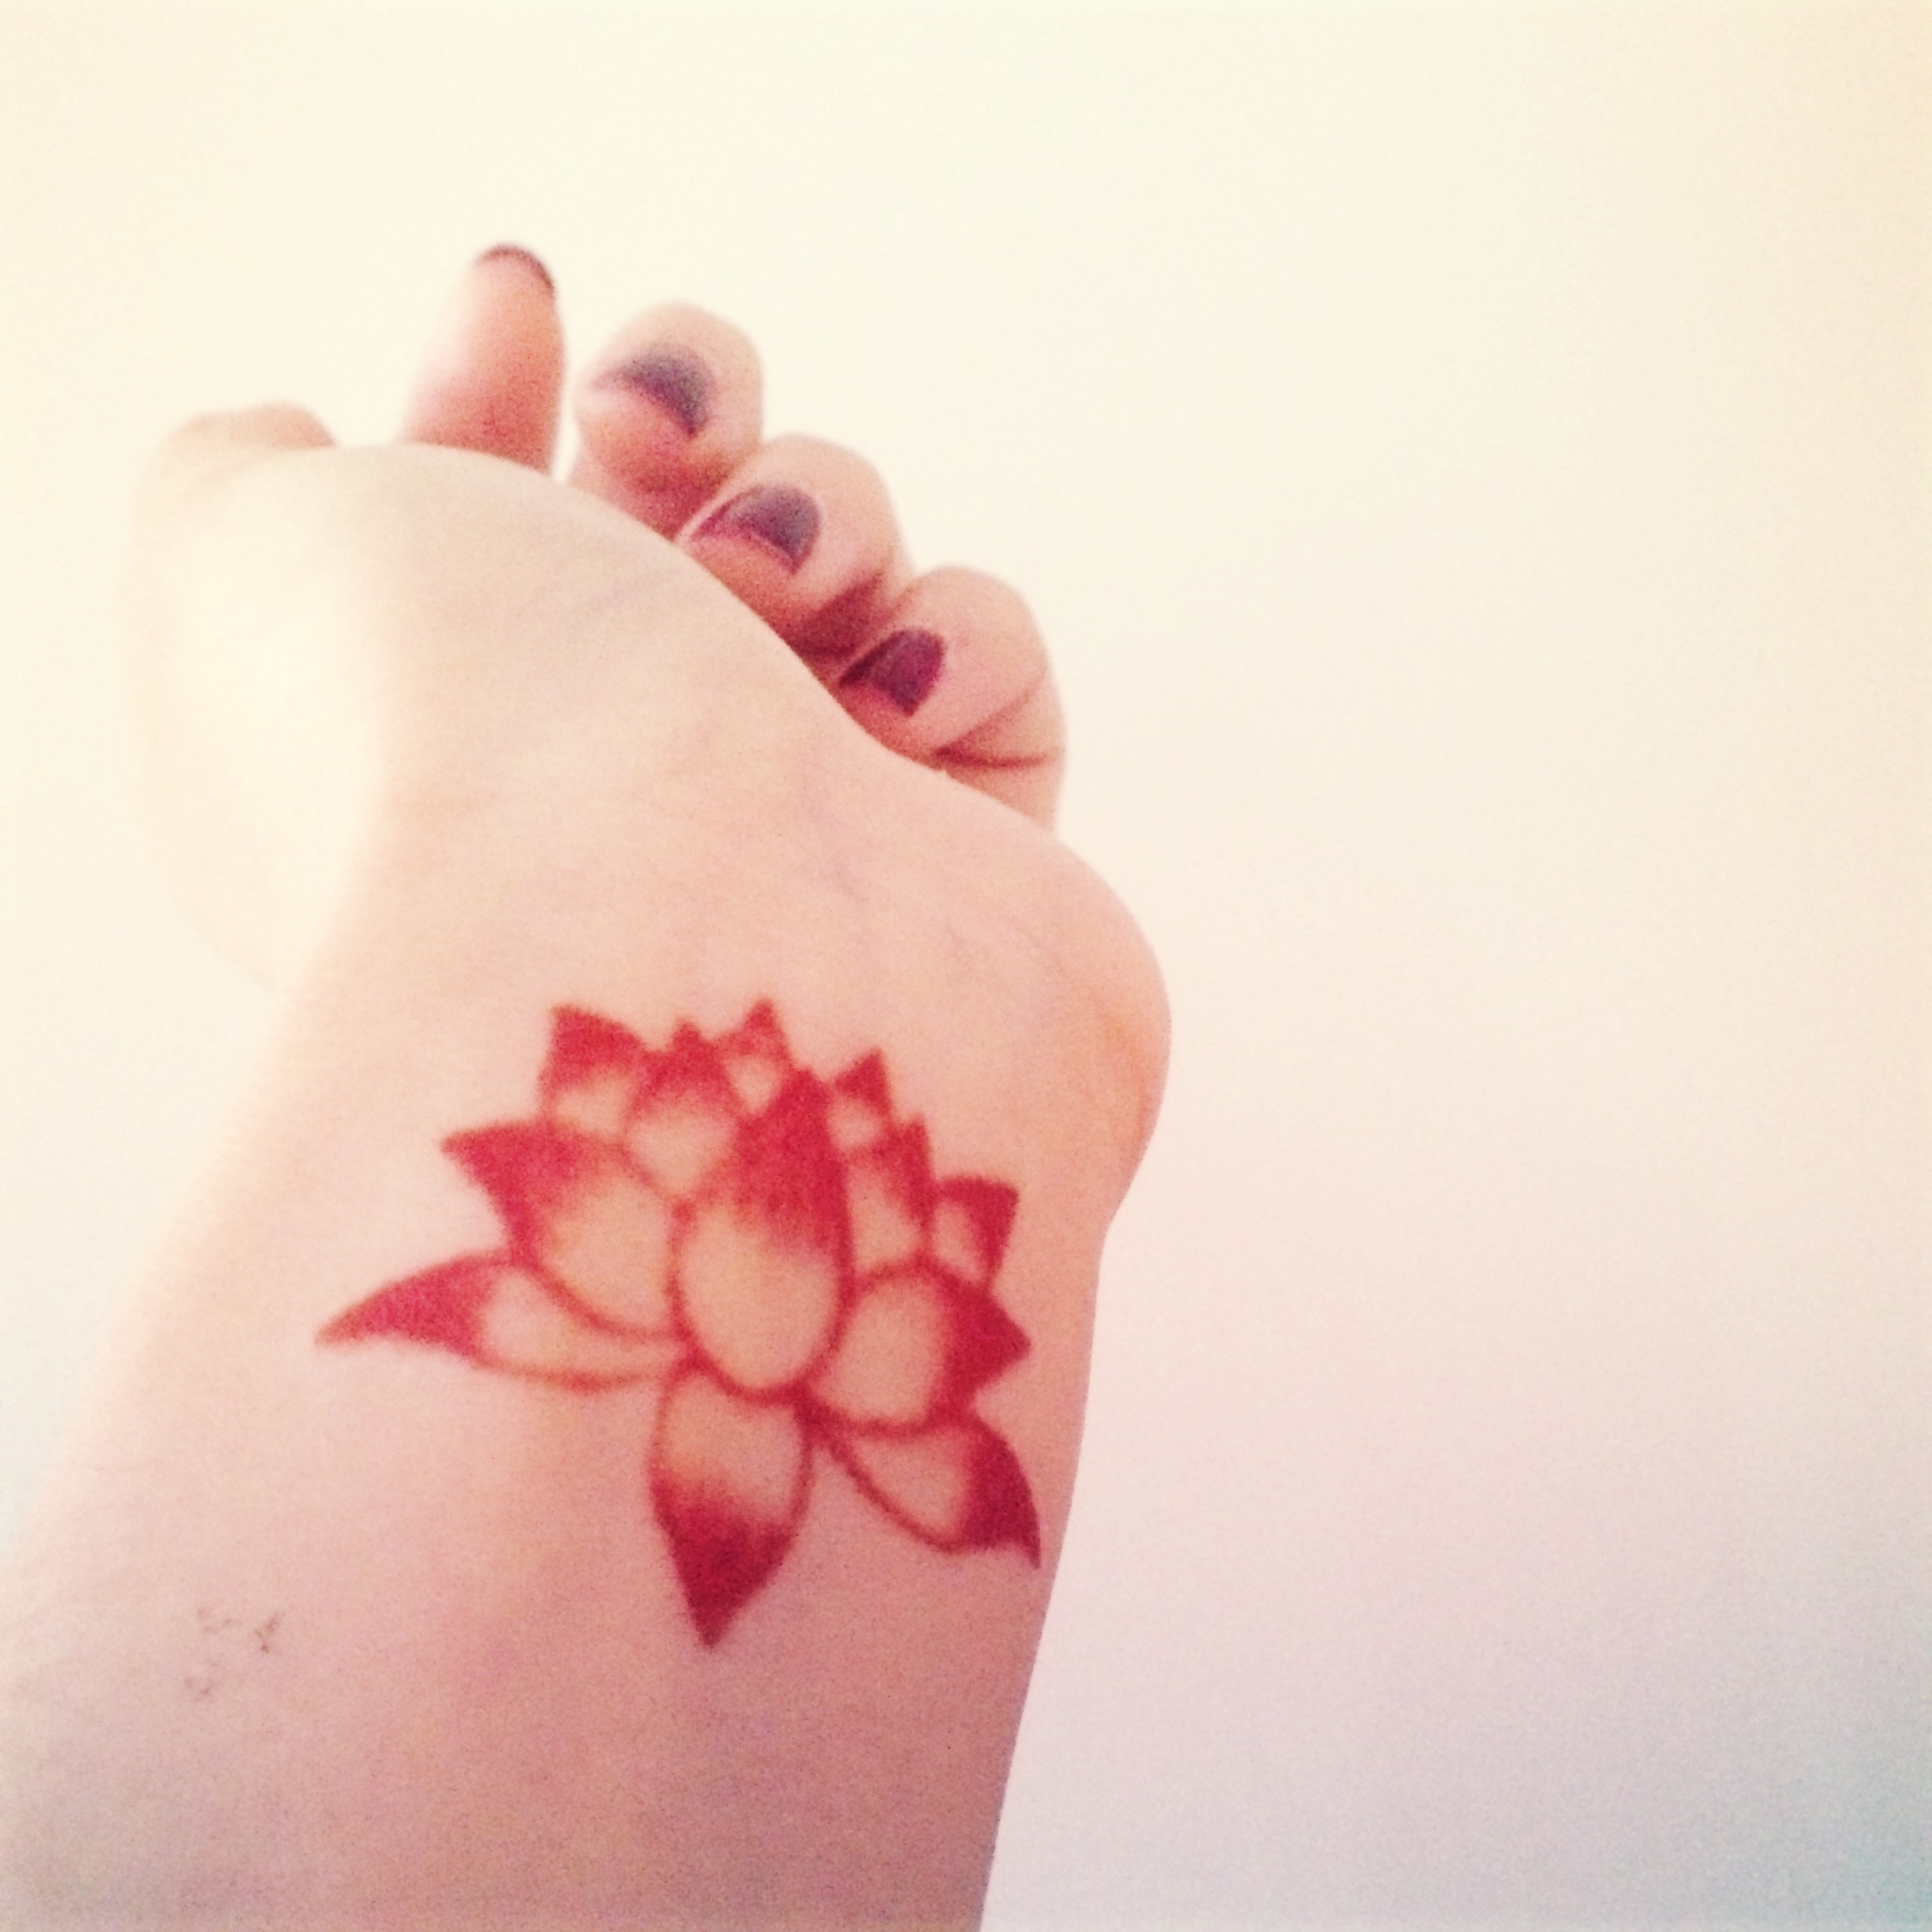 3ps Lotus Tattoo In 3 Sizes Inknart Temporary Tattoo Wrist Quote